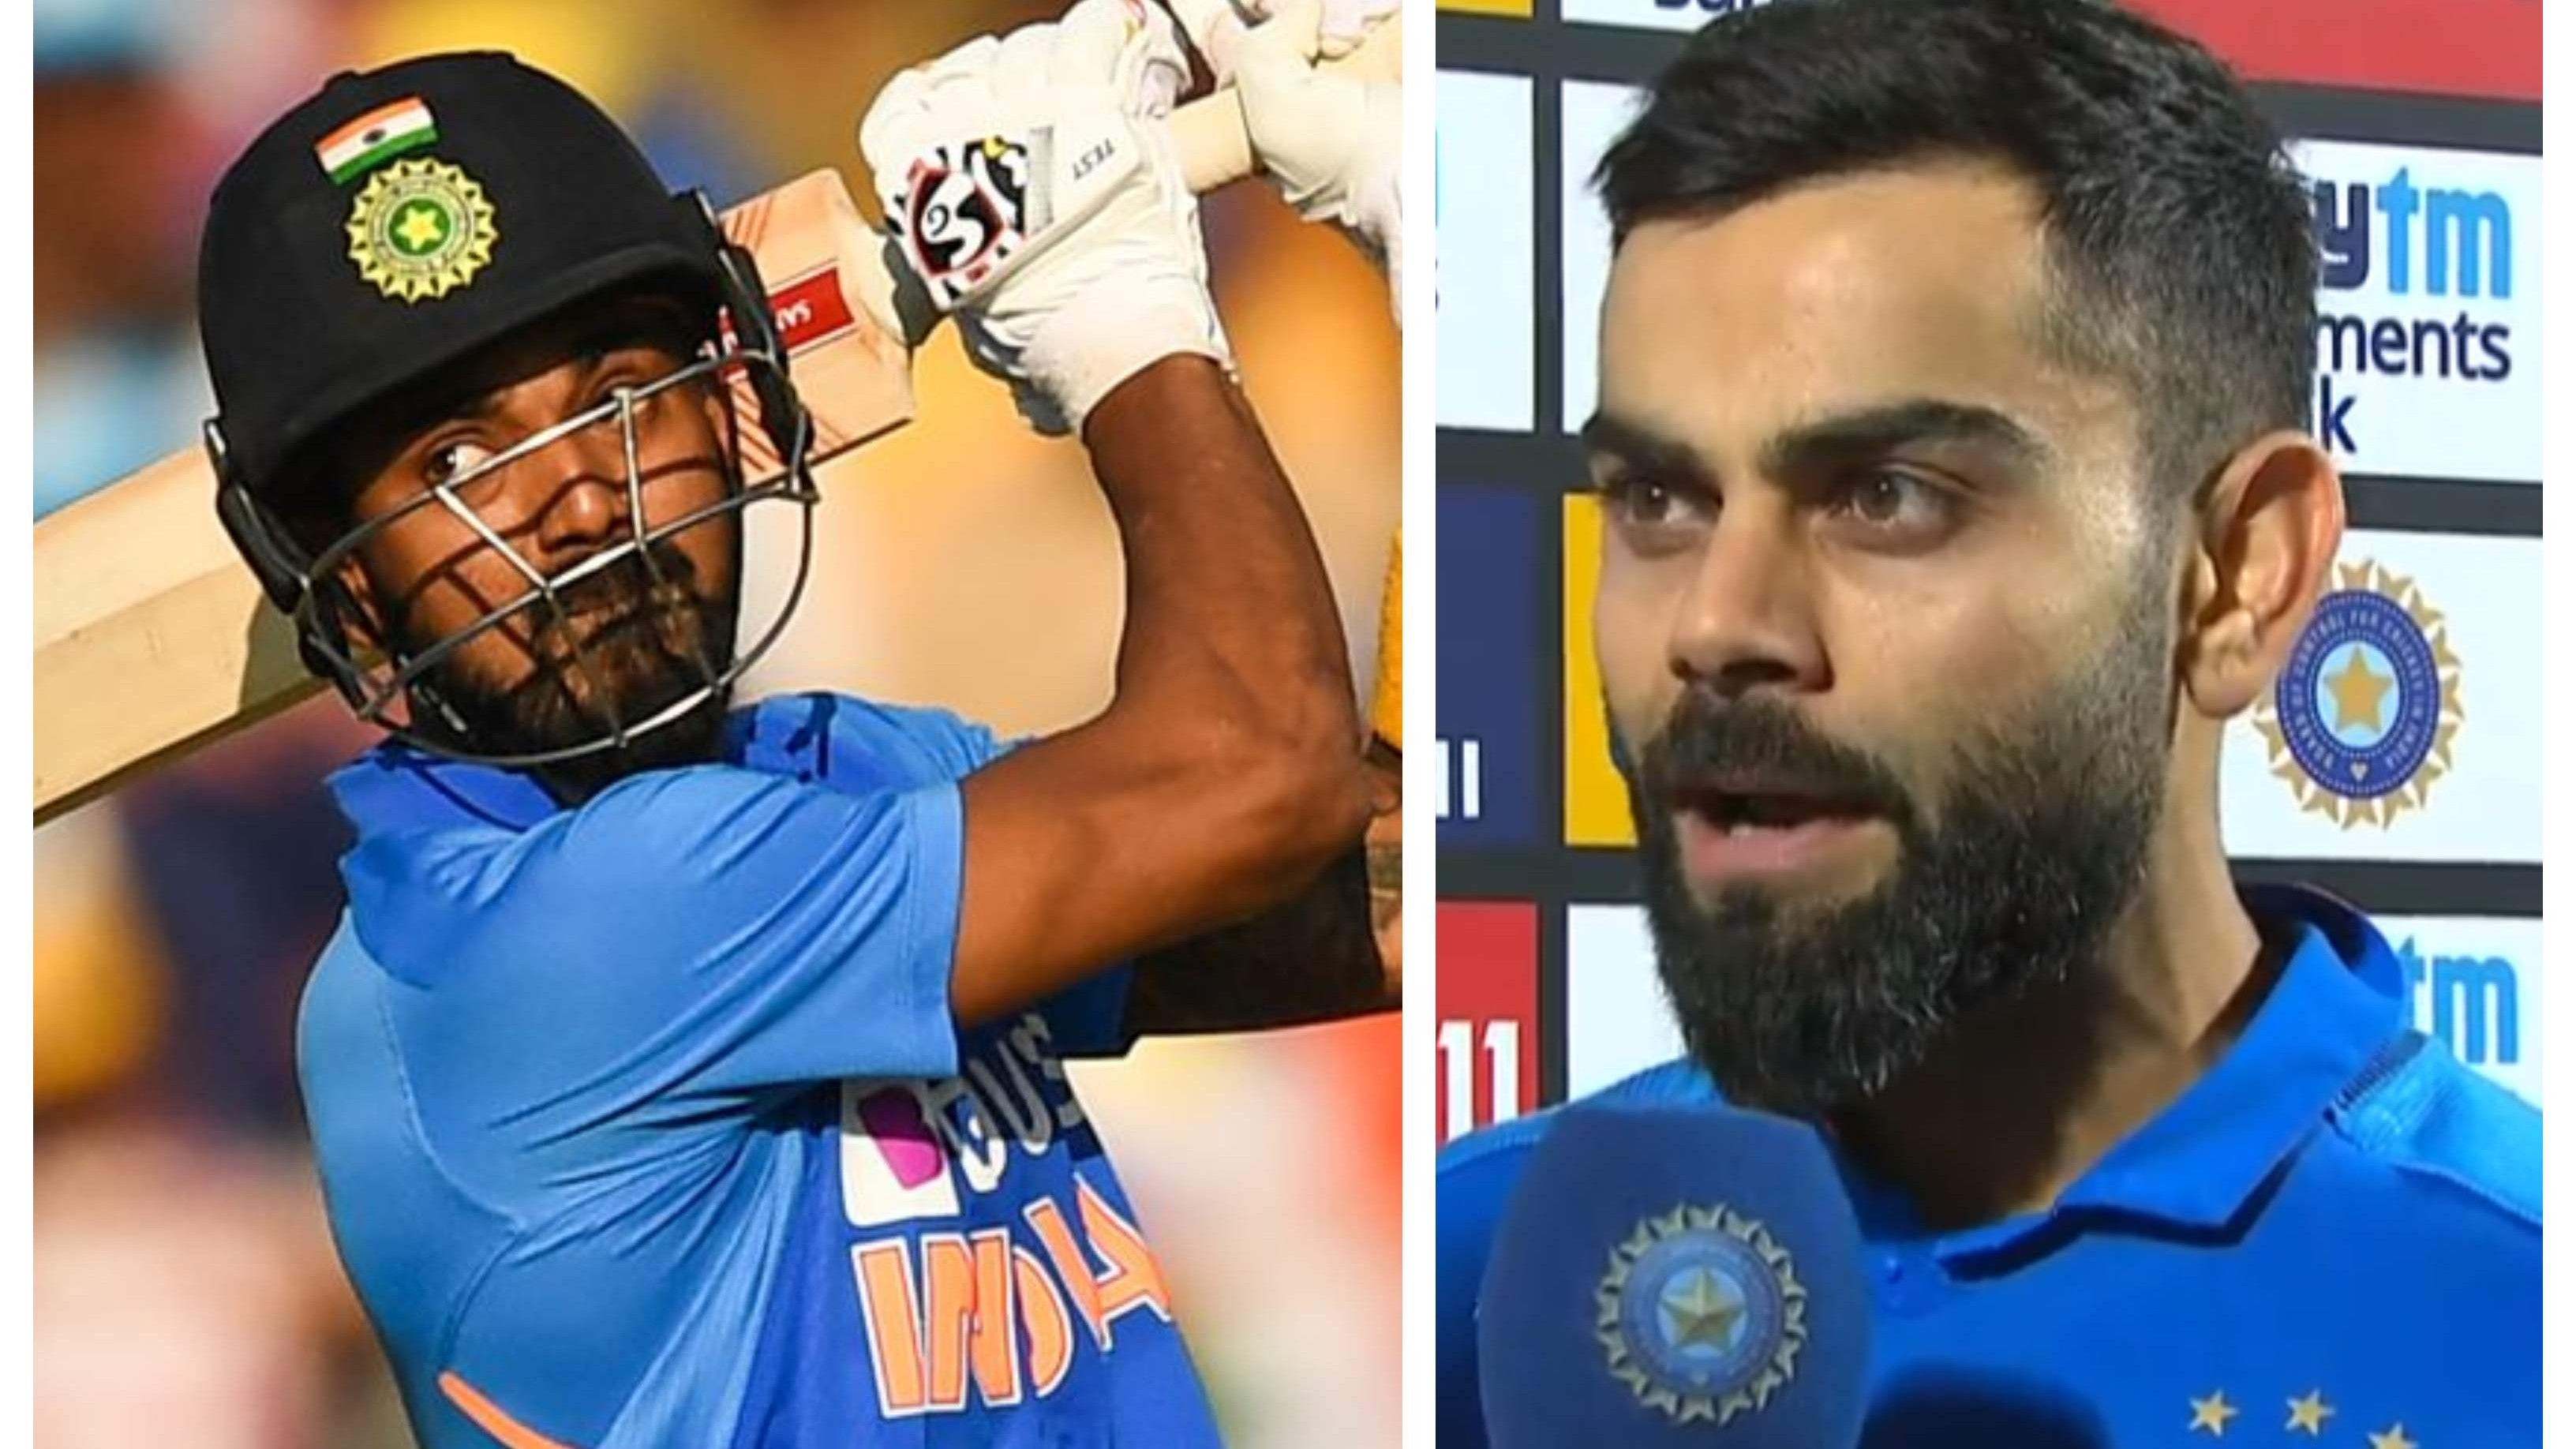 IND v AUS 2020: 'Best he's played at international level', Kohli hails Rahul's blazing knock in 2nd ODI